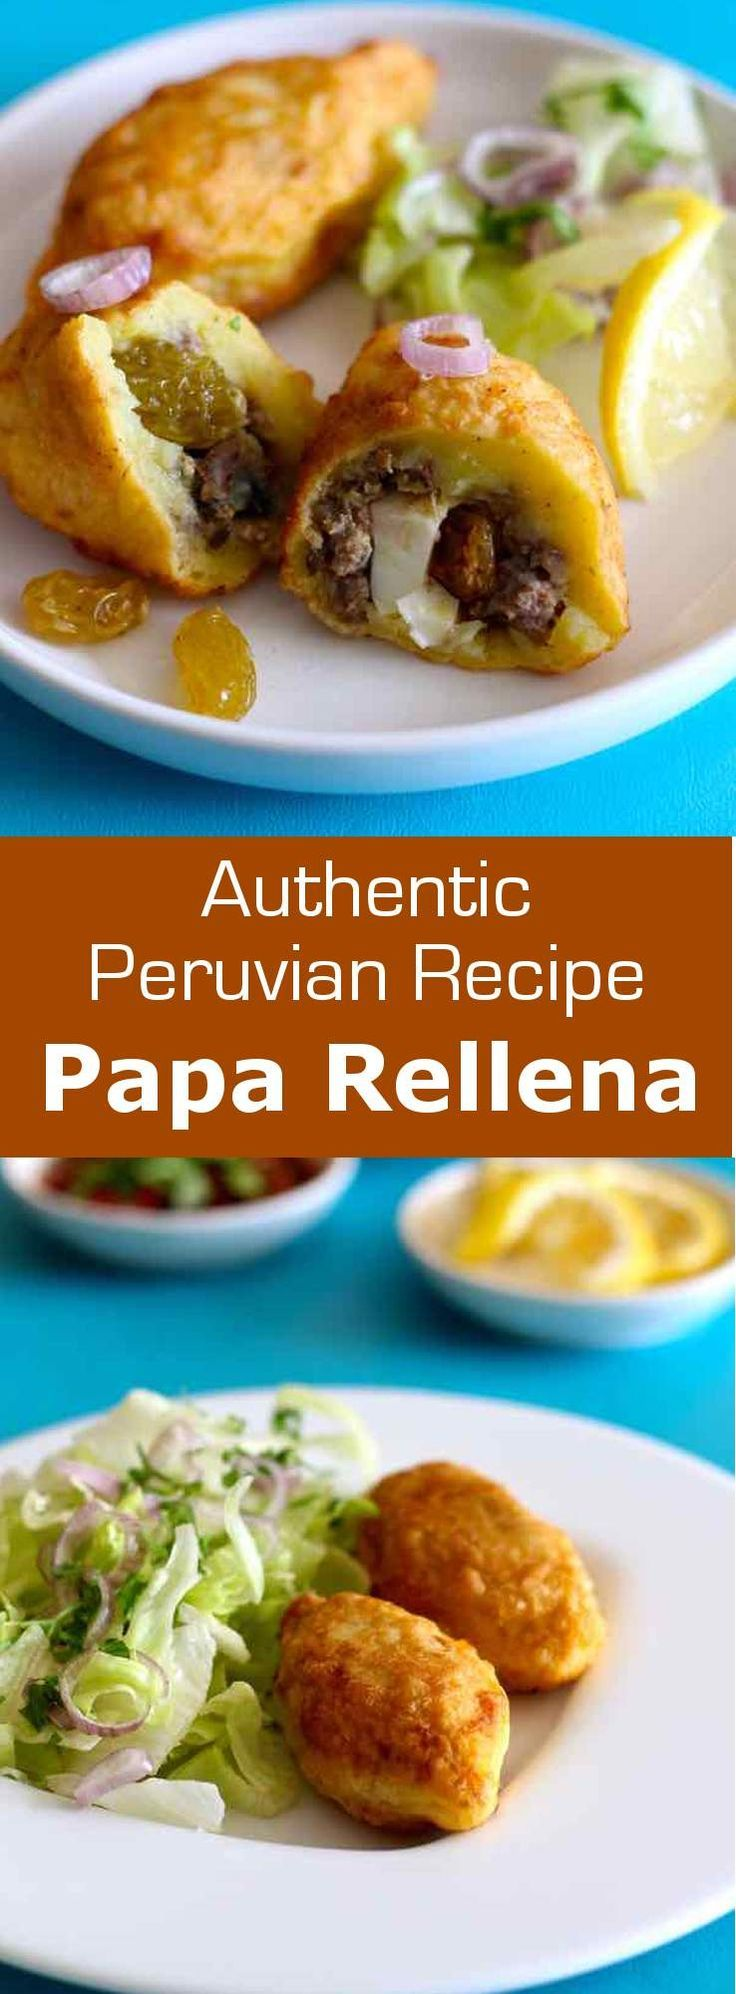 Papa rellena is a small bite of mashed potato stuffed with meat, tomato, black olives, raisins and flavored with oregano and cumin, then fried. #peru #196flavors